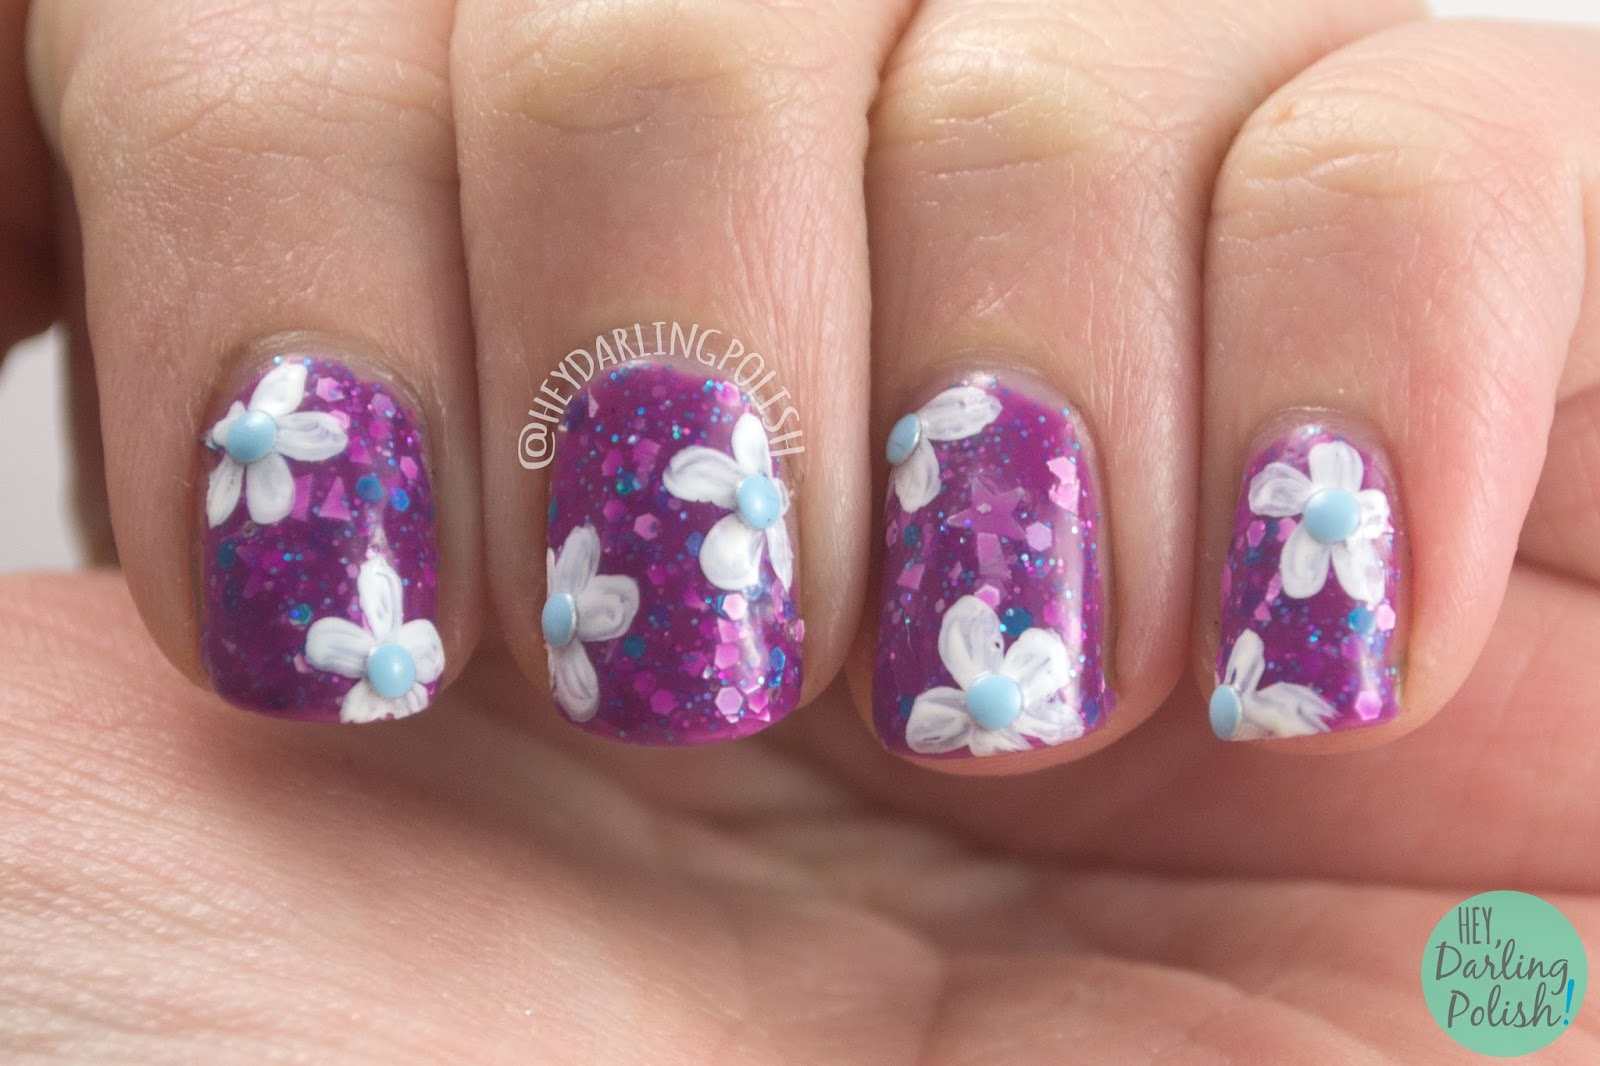 nails, nail polish, indie polish, kbshimmer, hey darling polish, midsummers night, floral, flowers, nail art